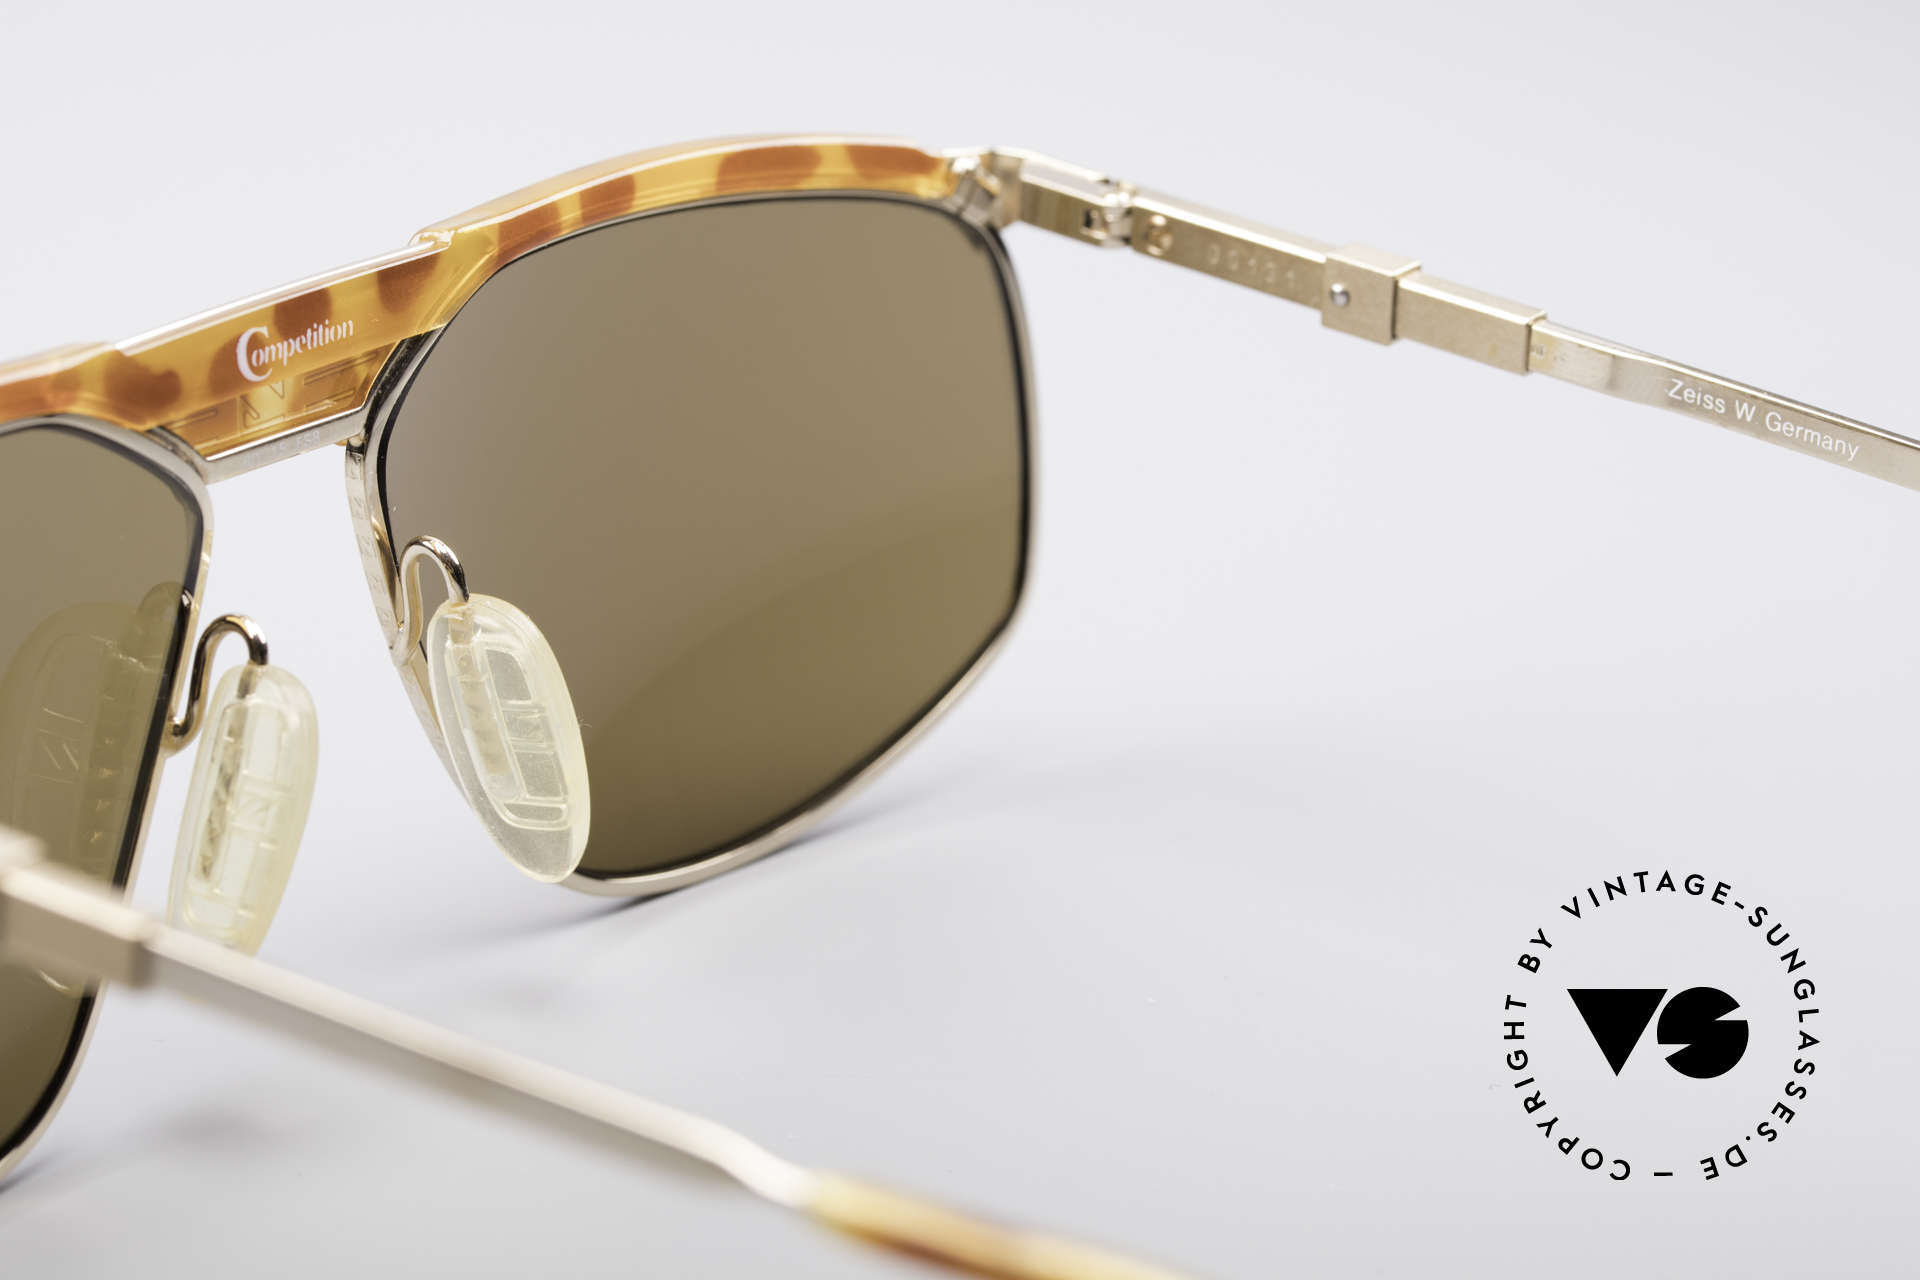 Zeiss 9926 Interchangeable Temples, never worn (like all our rare vintage Zeiss glasses), Made for Men